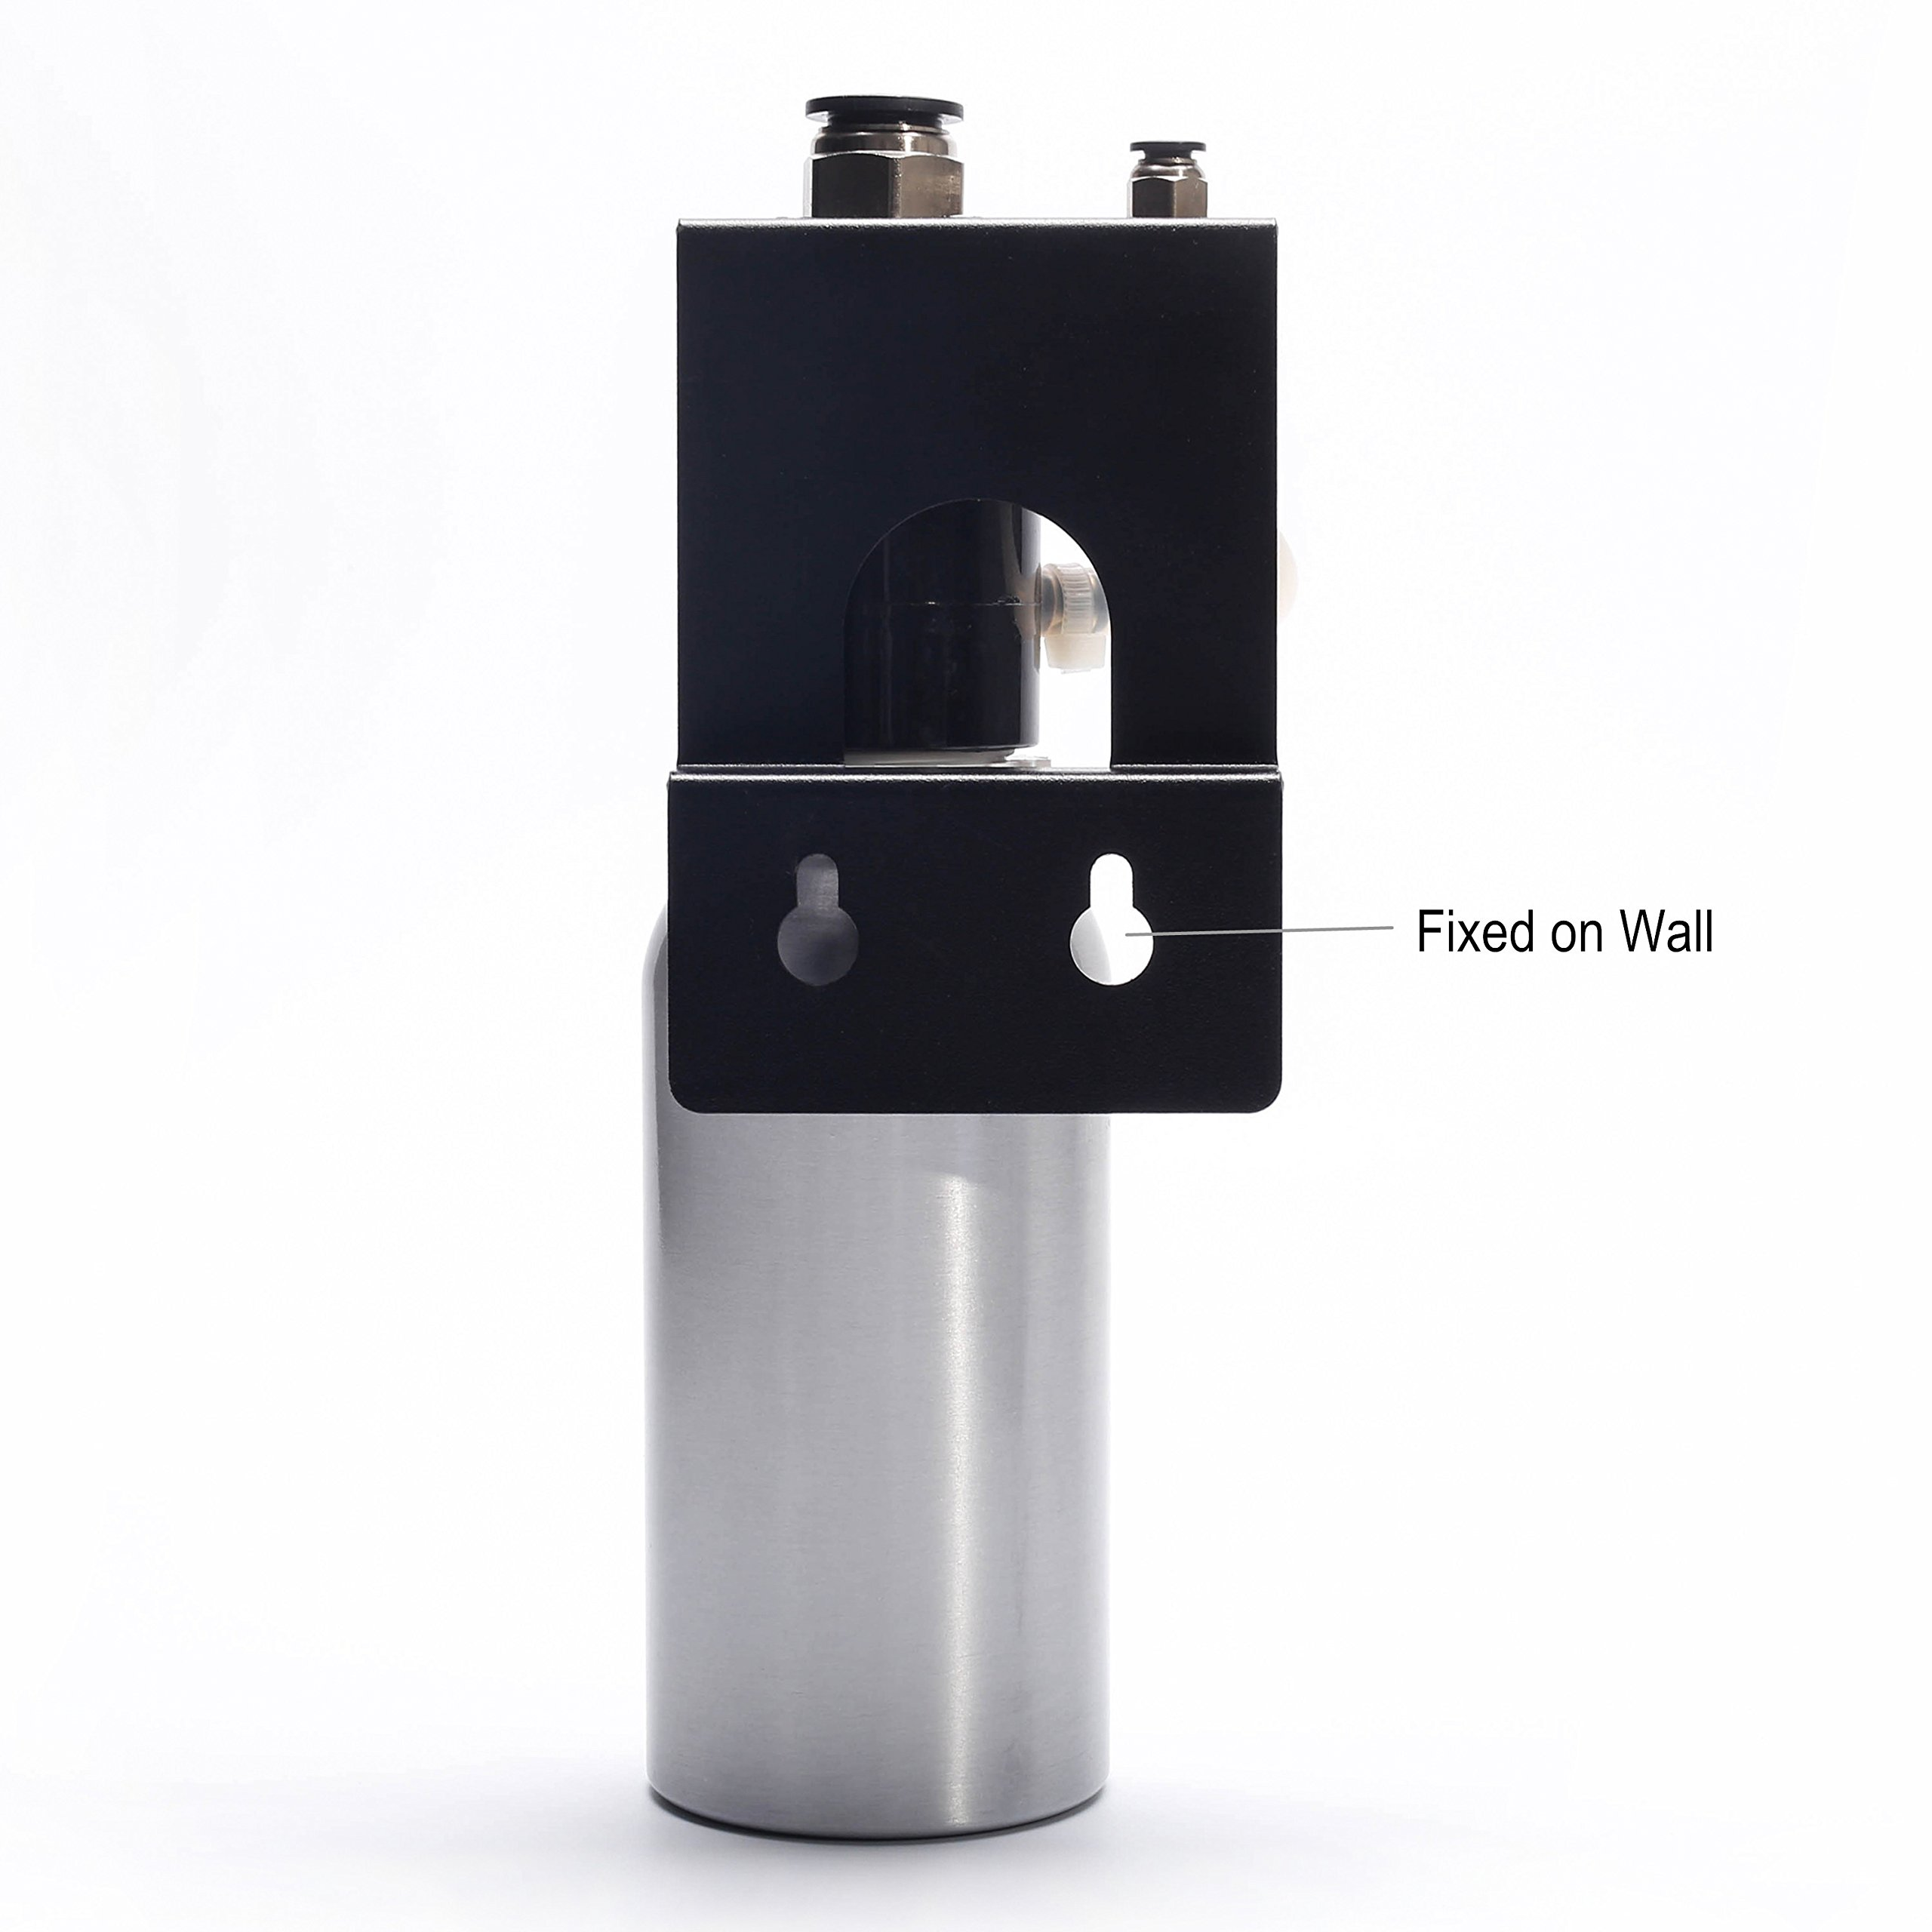 Kevinleo Scent Air Machine Portable 16,200-21,500 Square Feet, Waterless 100% Pure Essential Oil, Excellent Timer Panel from Monday to Sunday. can Hook to Air Conditioners,500ml Cartridge by Kevinleo (Image #4)